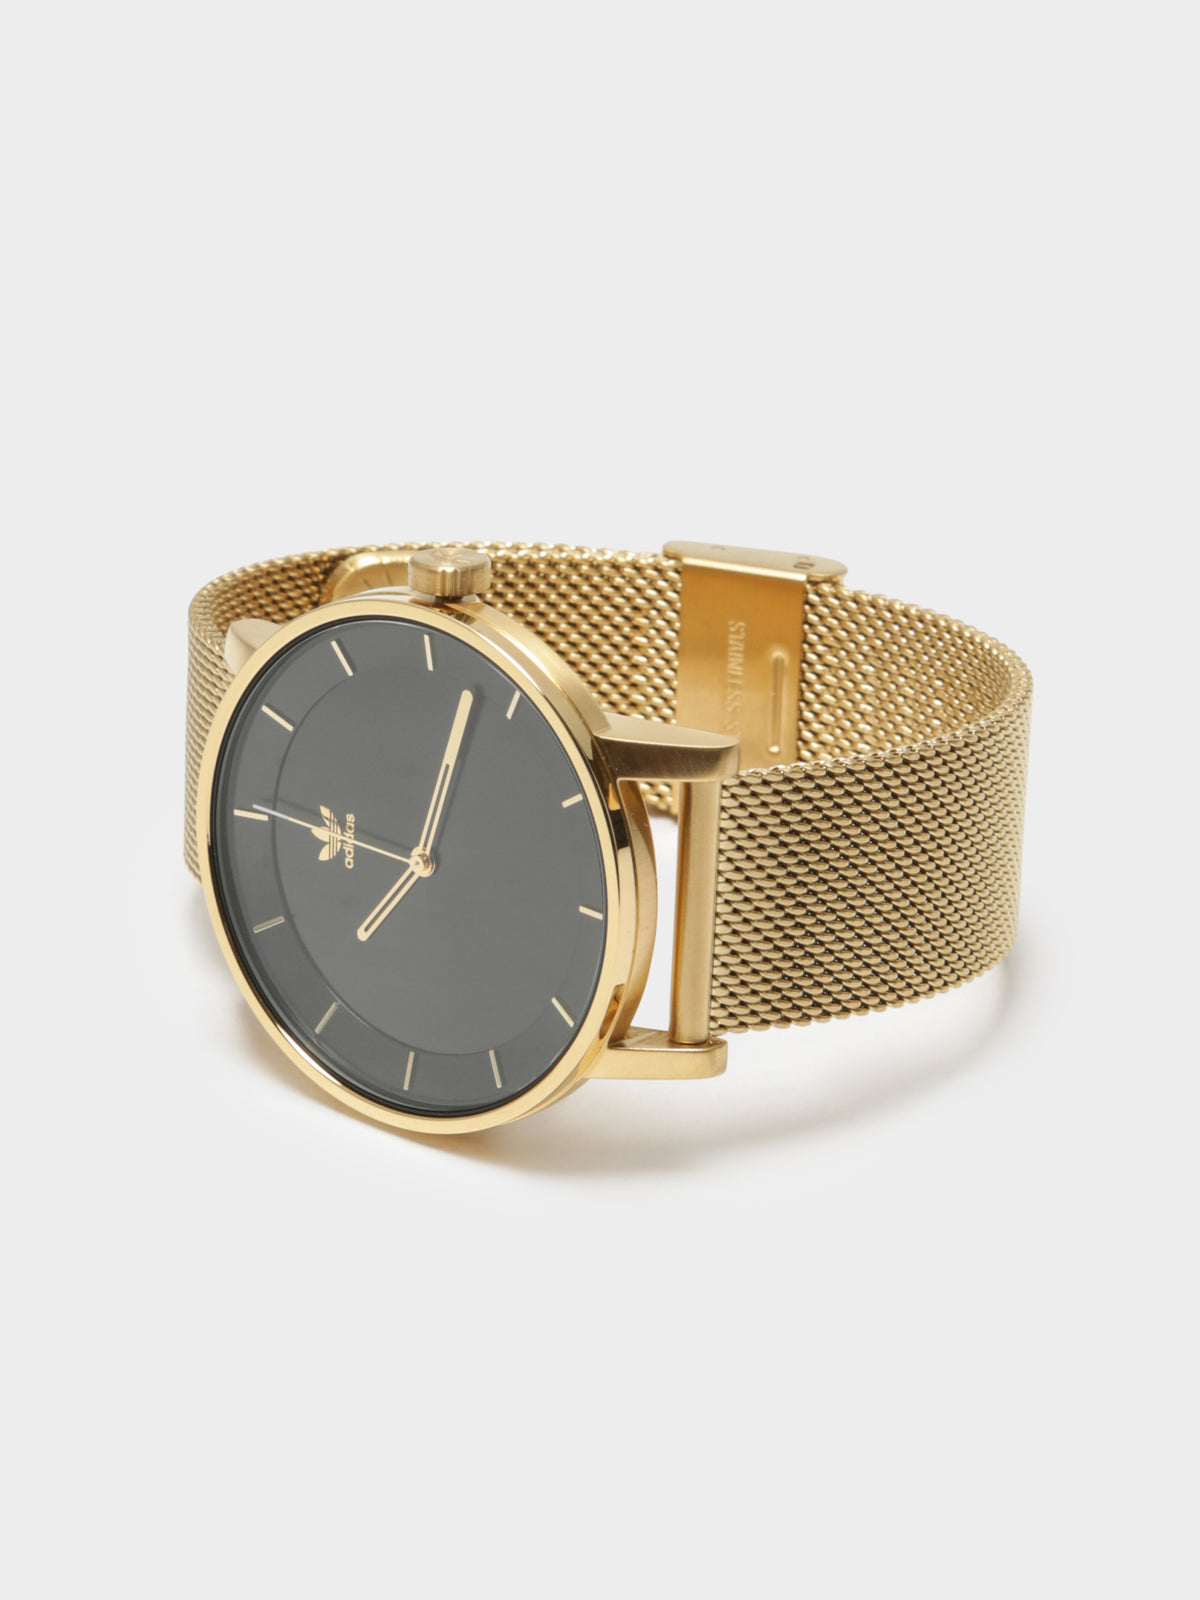 Unisex District_M1 40mm Watch in Gold and Black Sunray